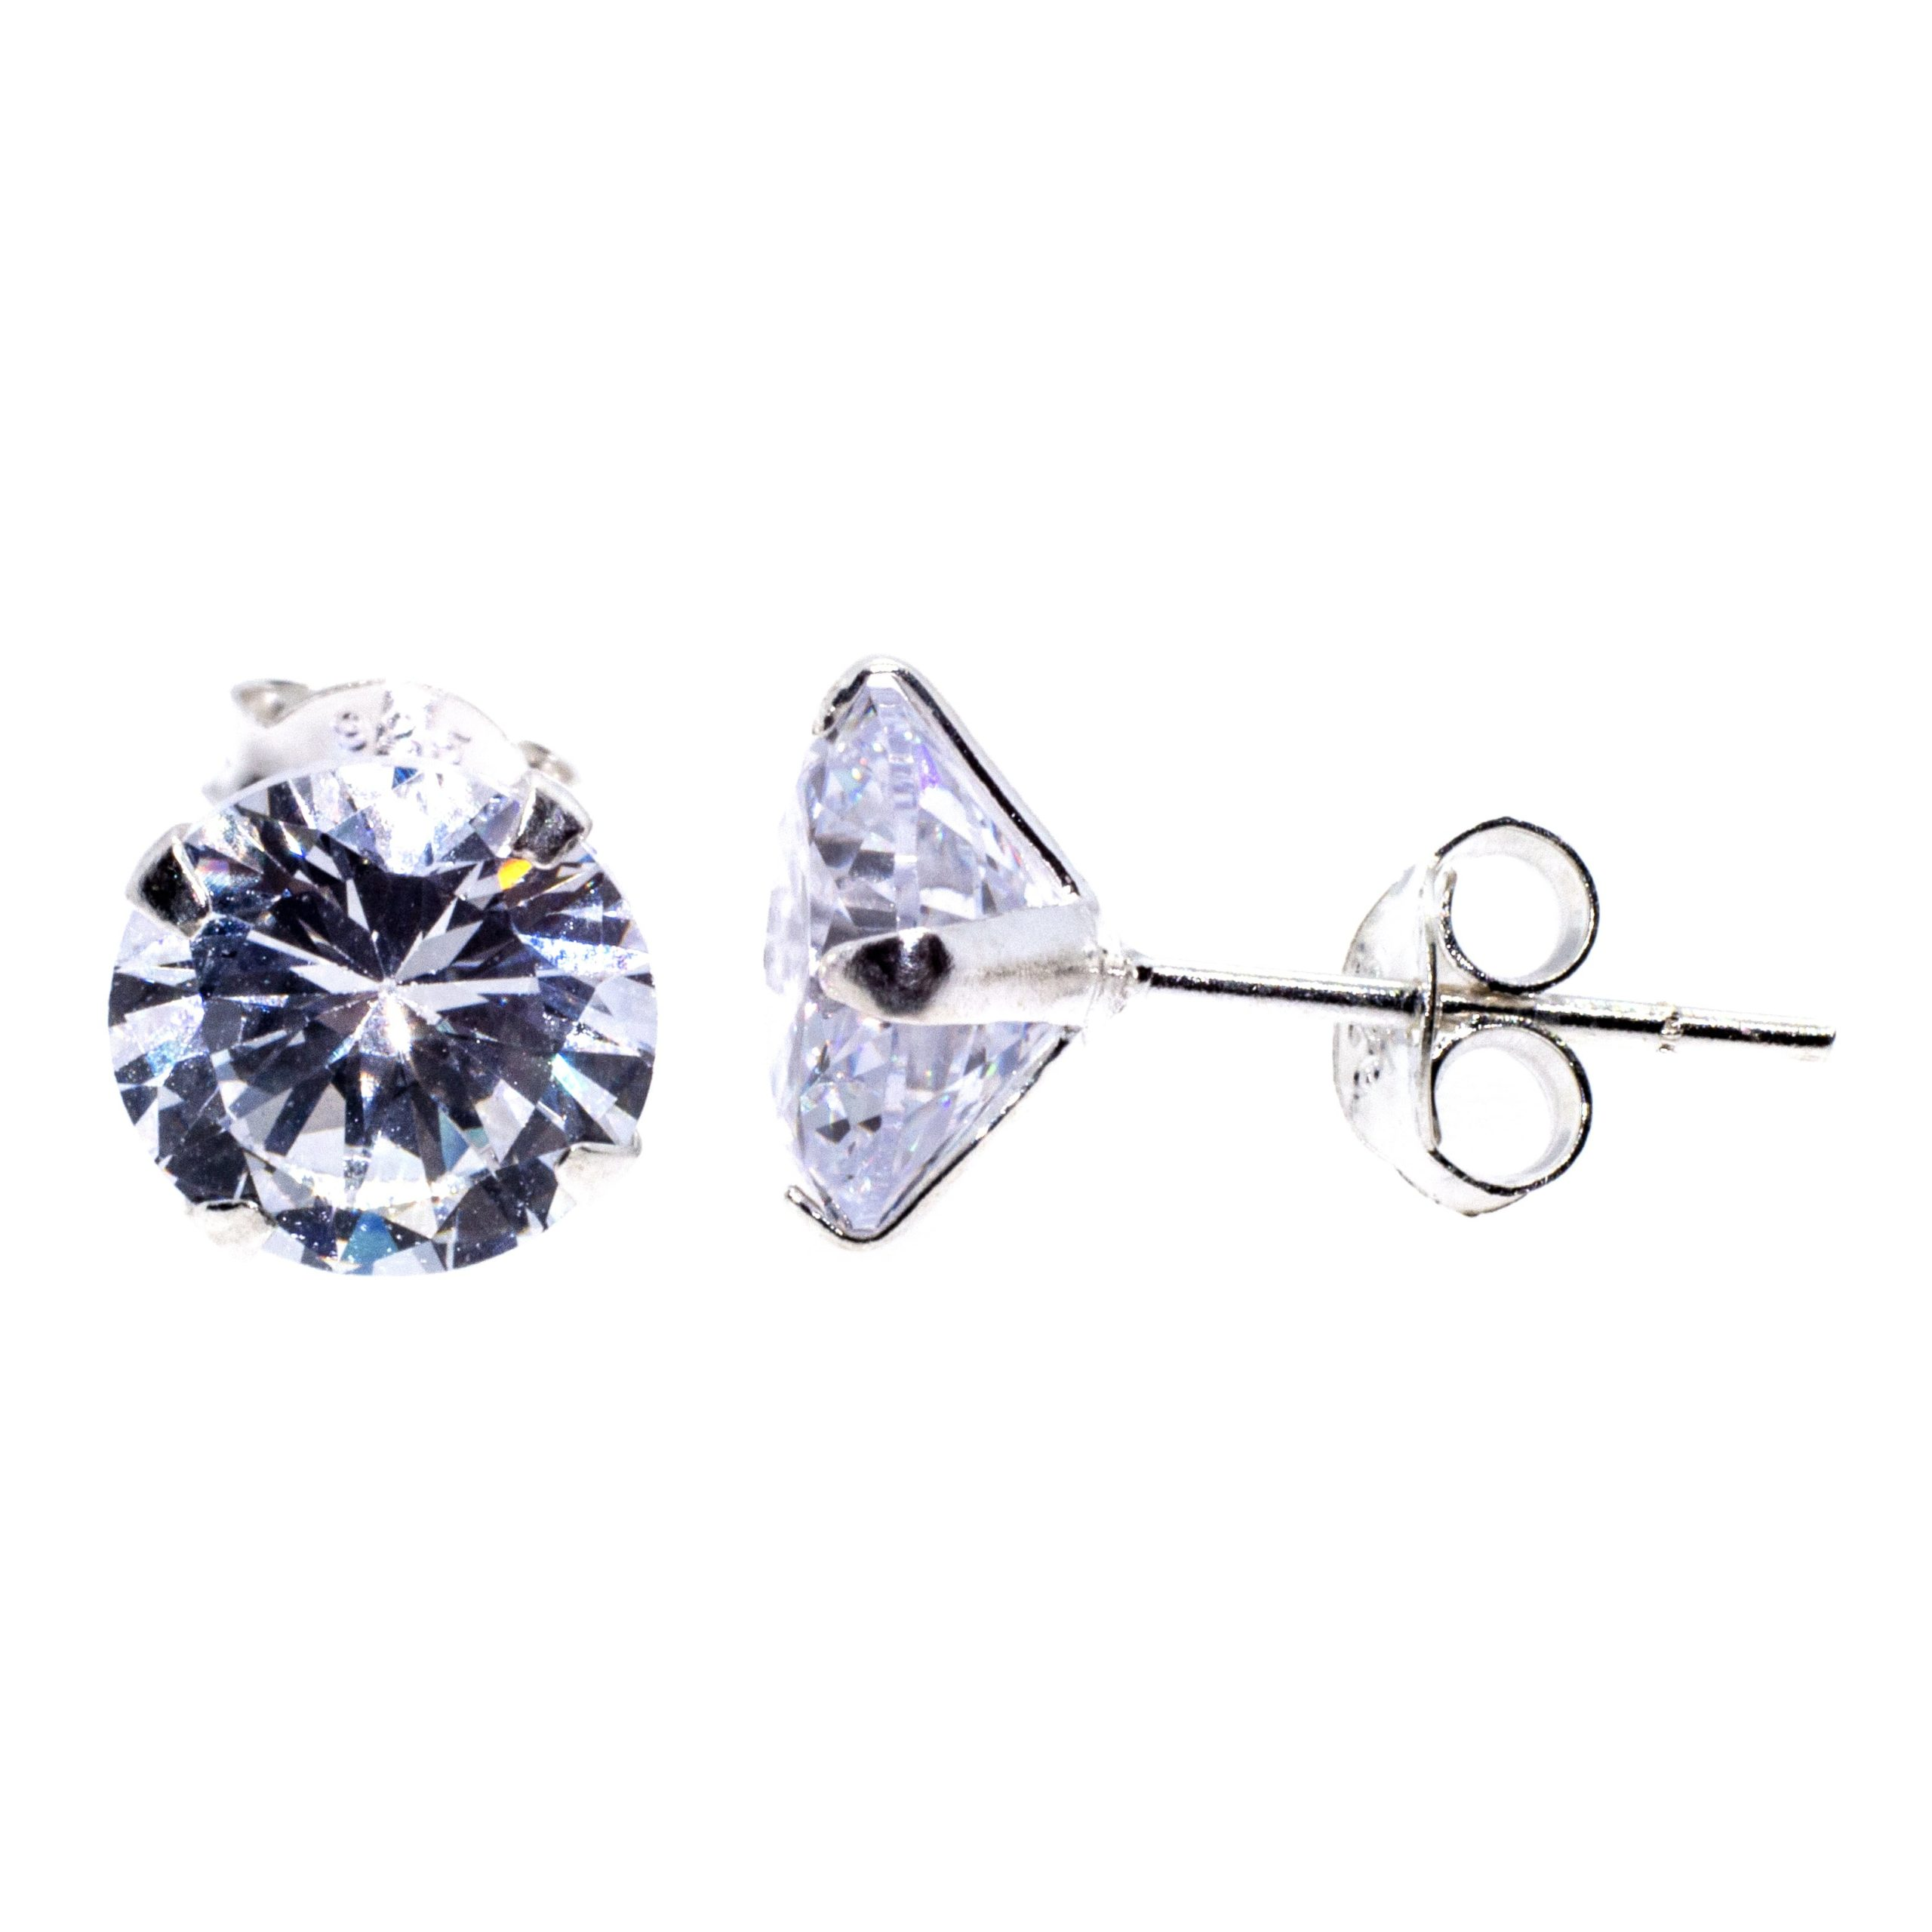 8mm CZ stud earrings sterling silver